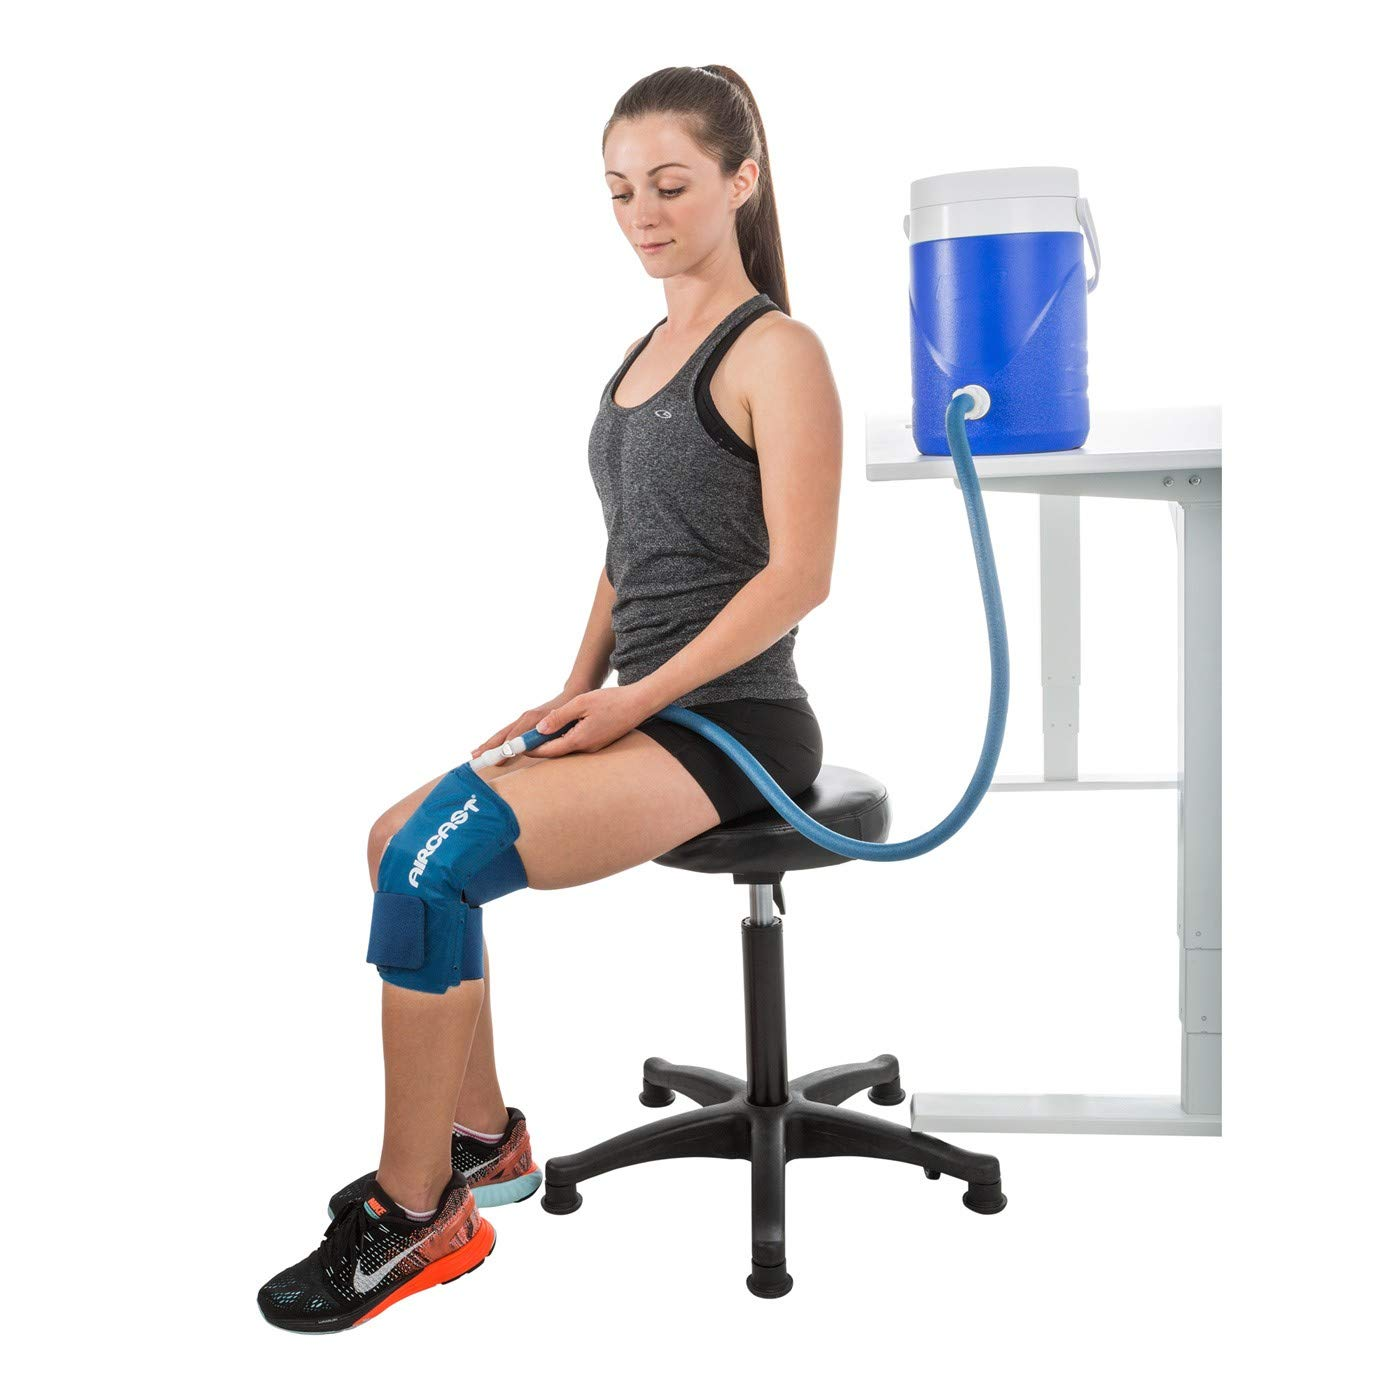 Image of Health and Household Aircast Cryo/Cuff Systems, Complete System, Knee